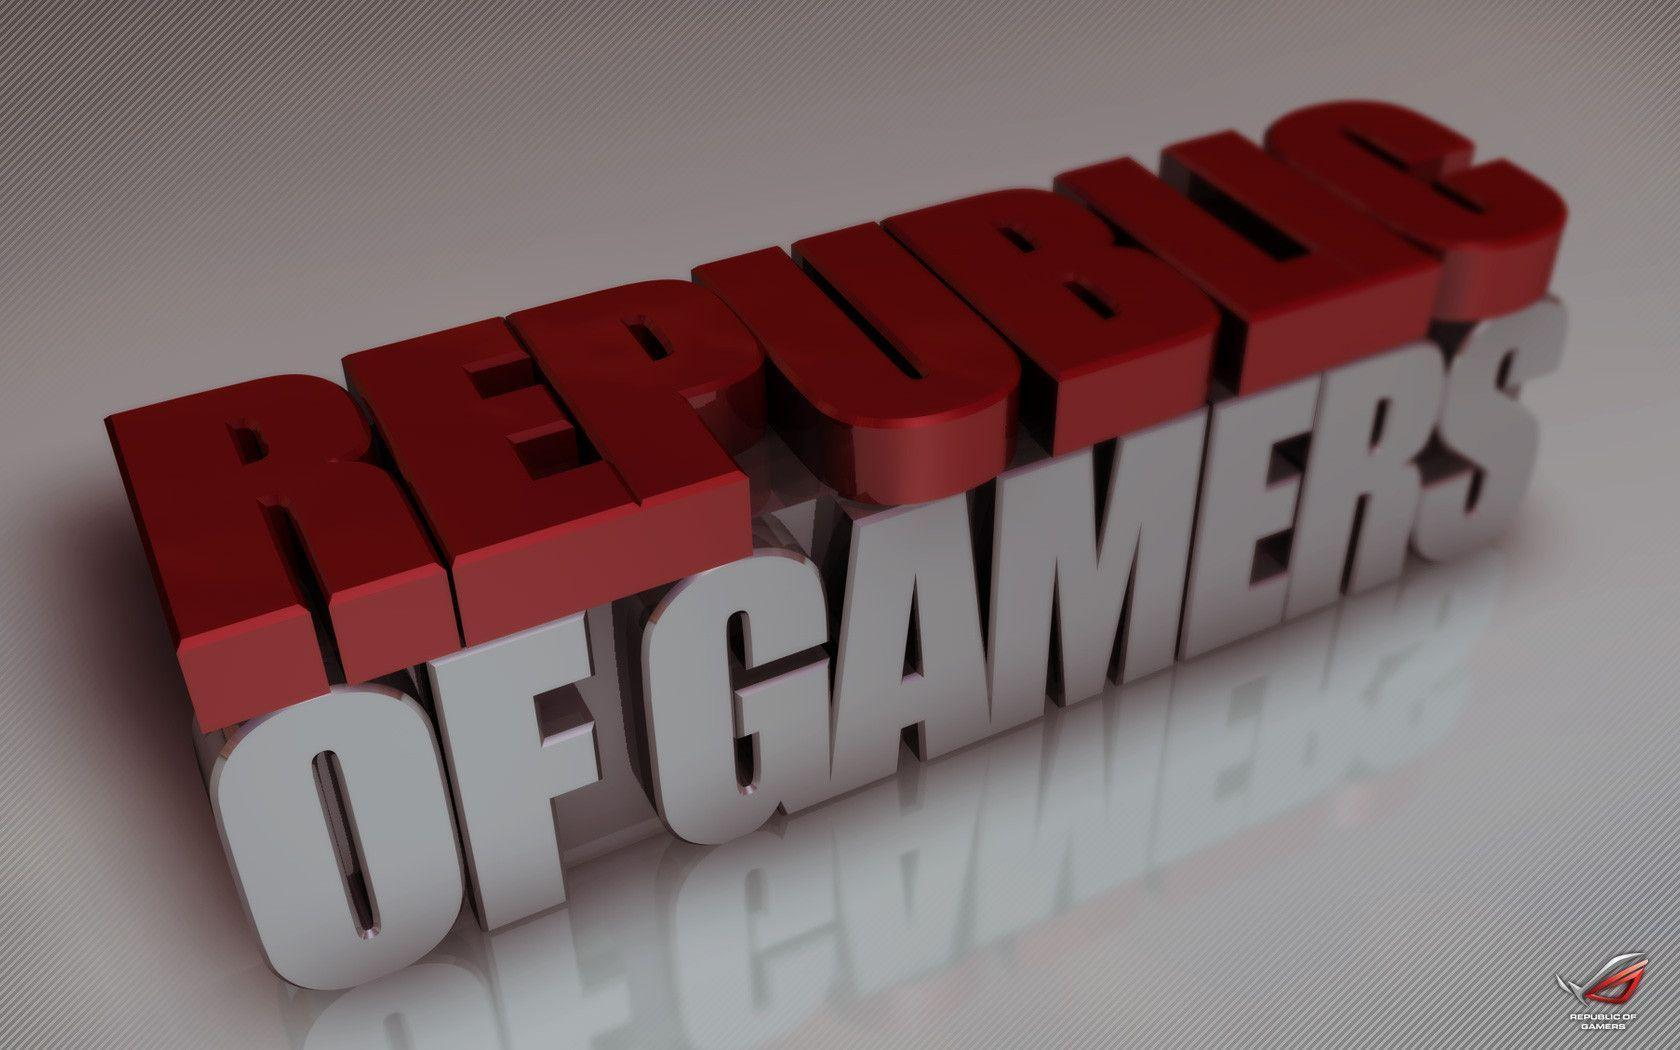 Republic of gamers wallpaper by Blast-X on DeviantArt